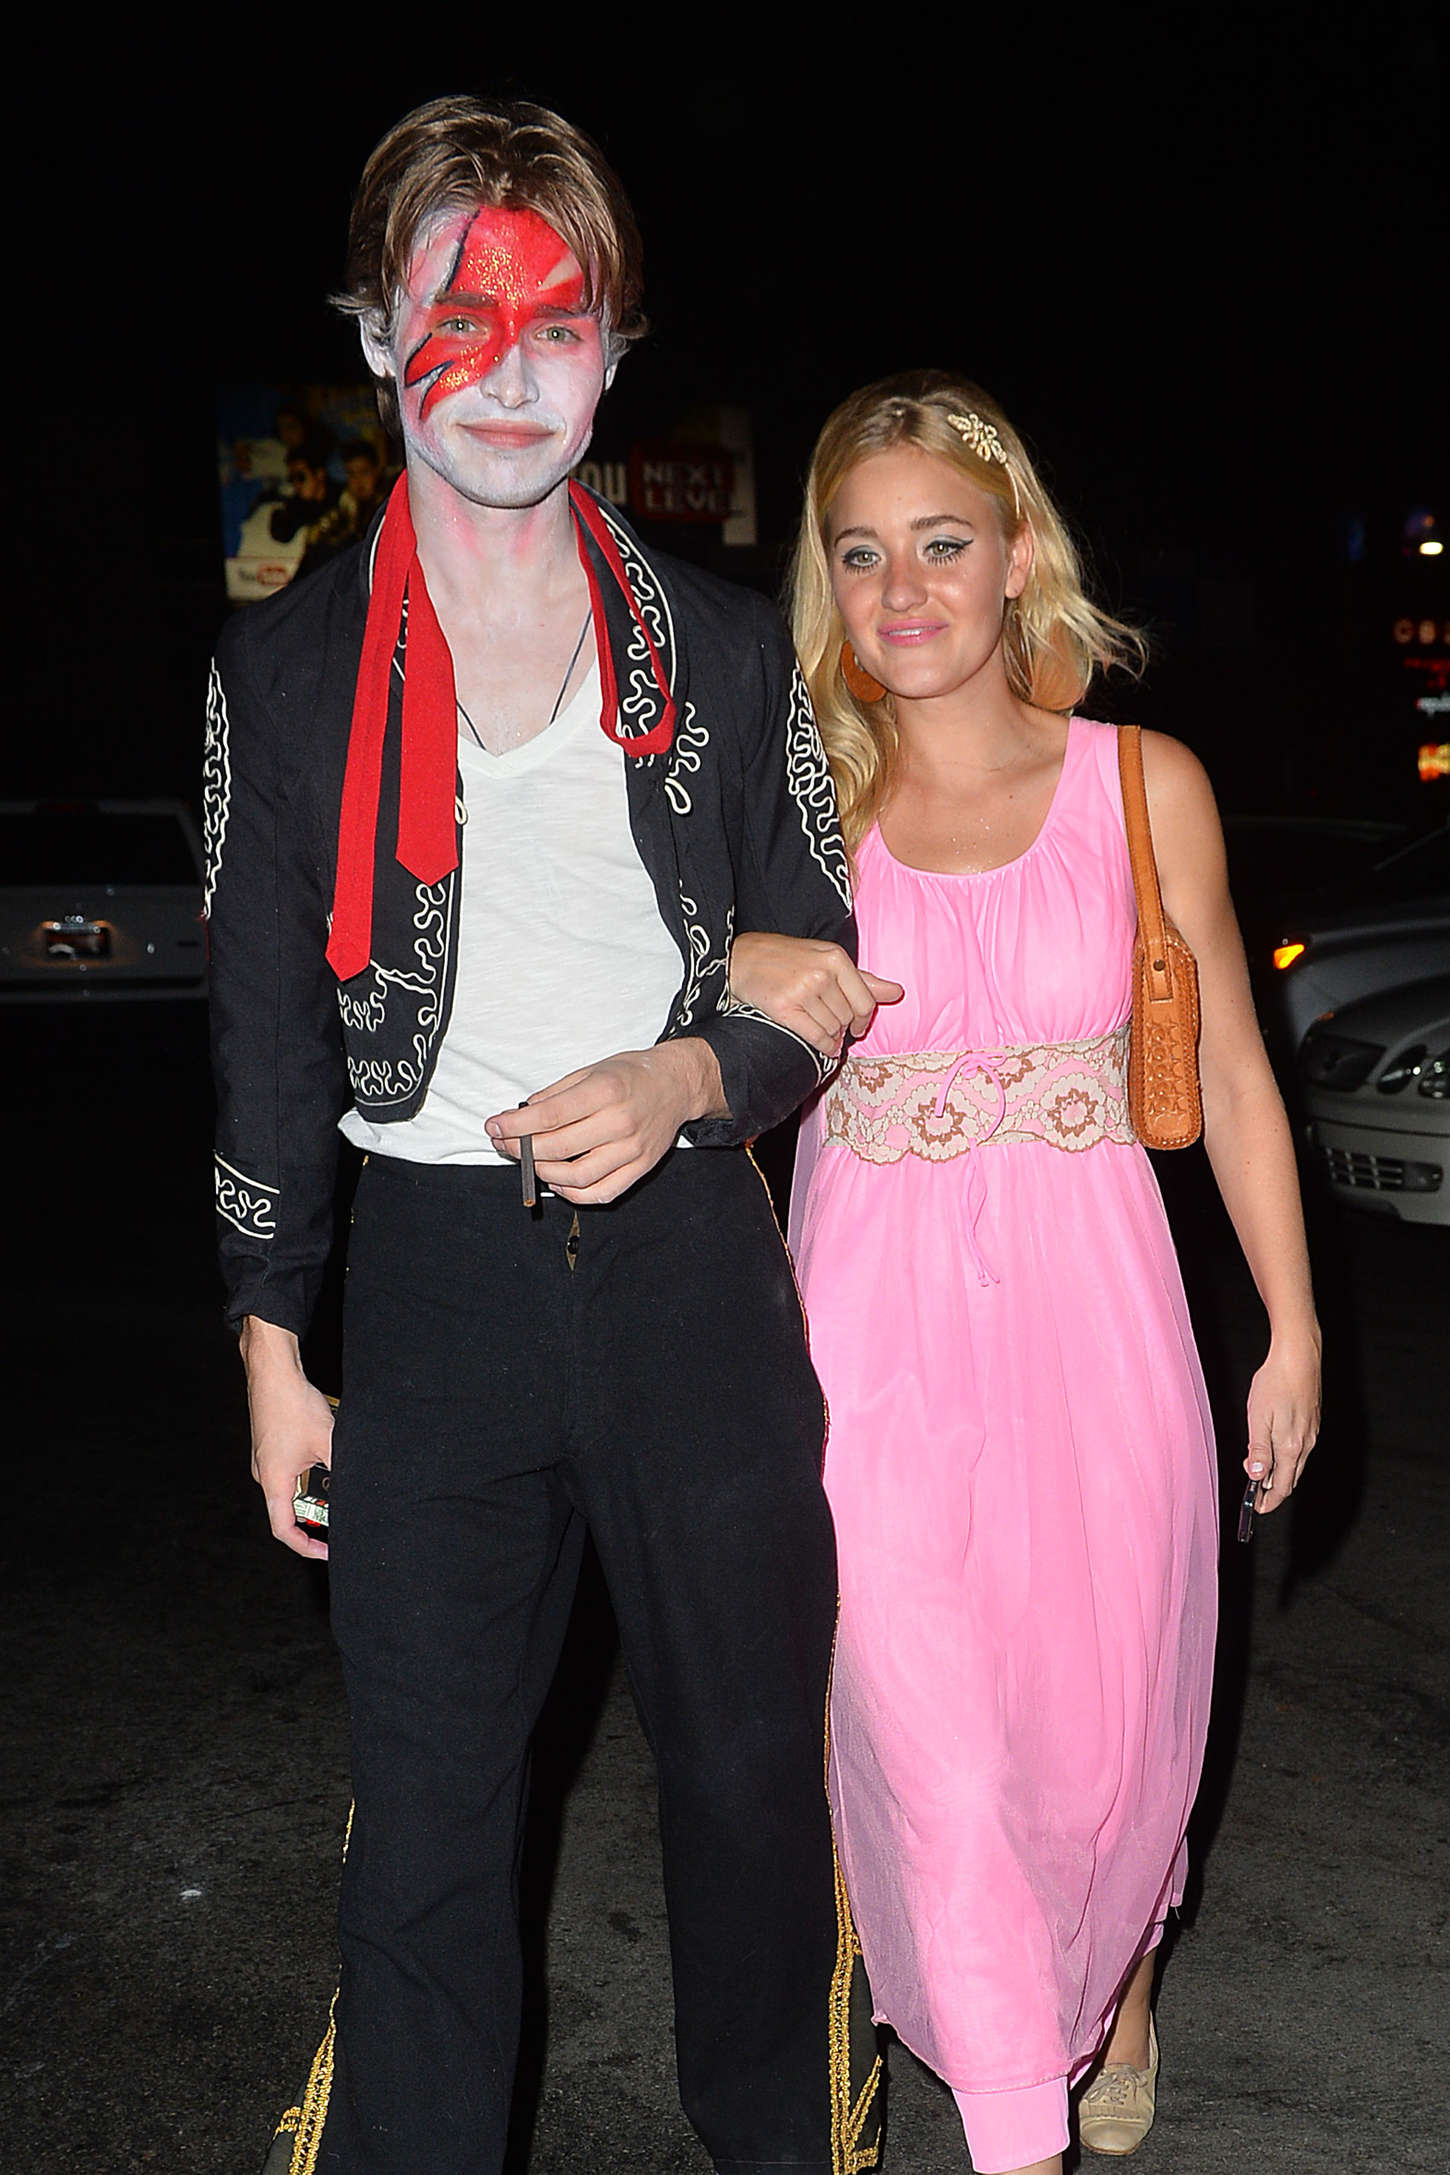 Aly and AJ Michalka Halloween Party at Hyde in West Hollywood